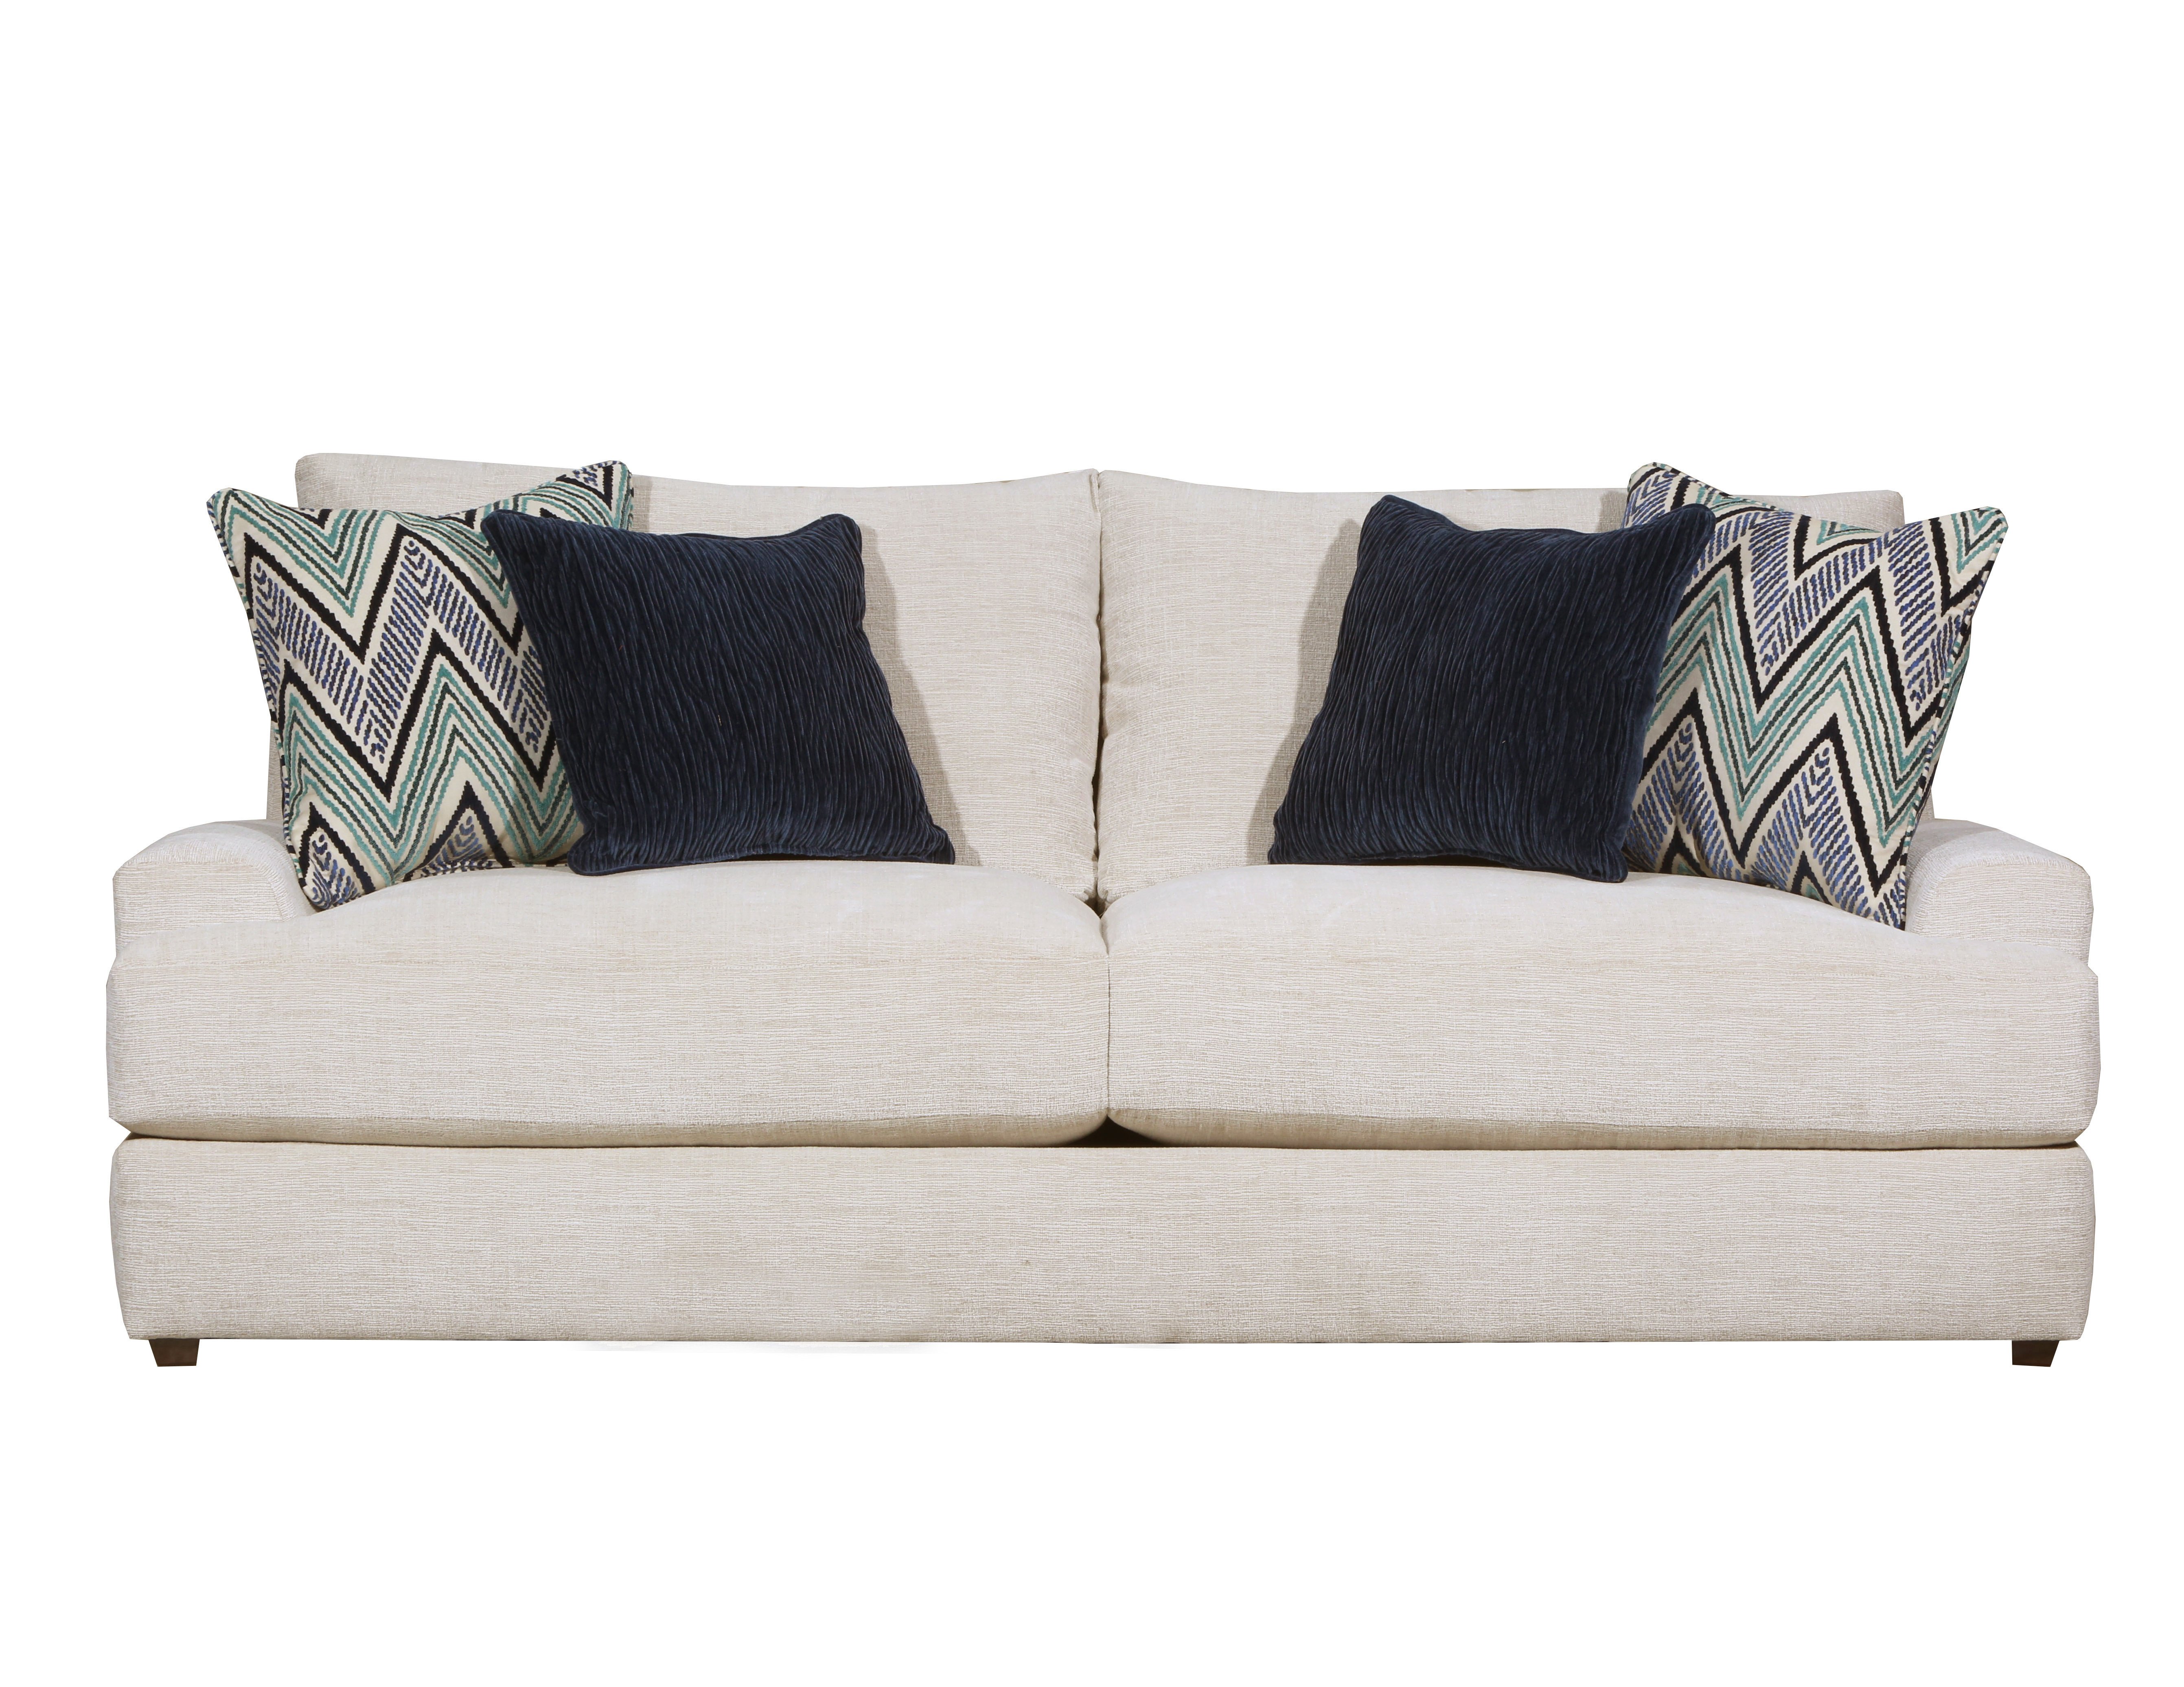 Highland Dunes Aidan Sofa | Wayfair Intended For Aidan Ii Sofa Chairs (Image 19 of 20)